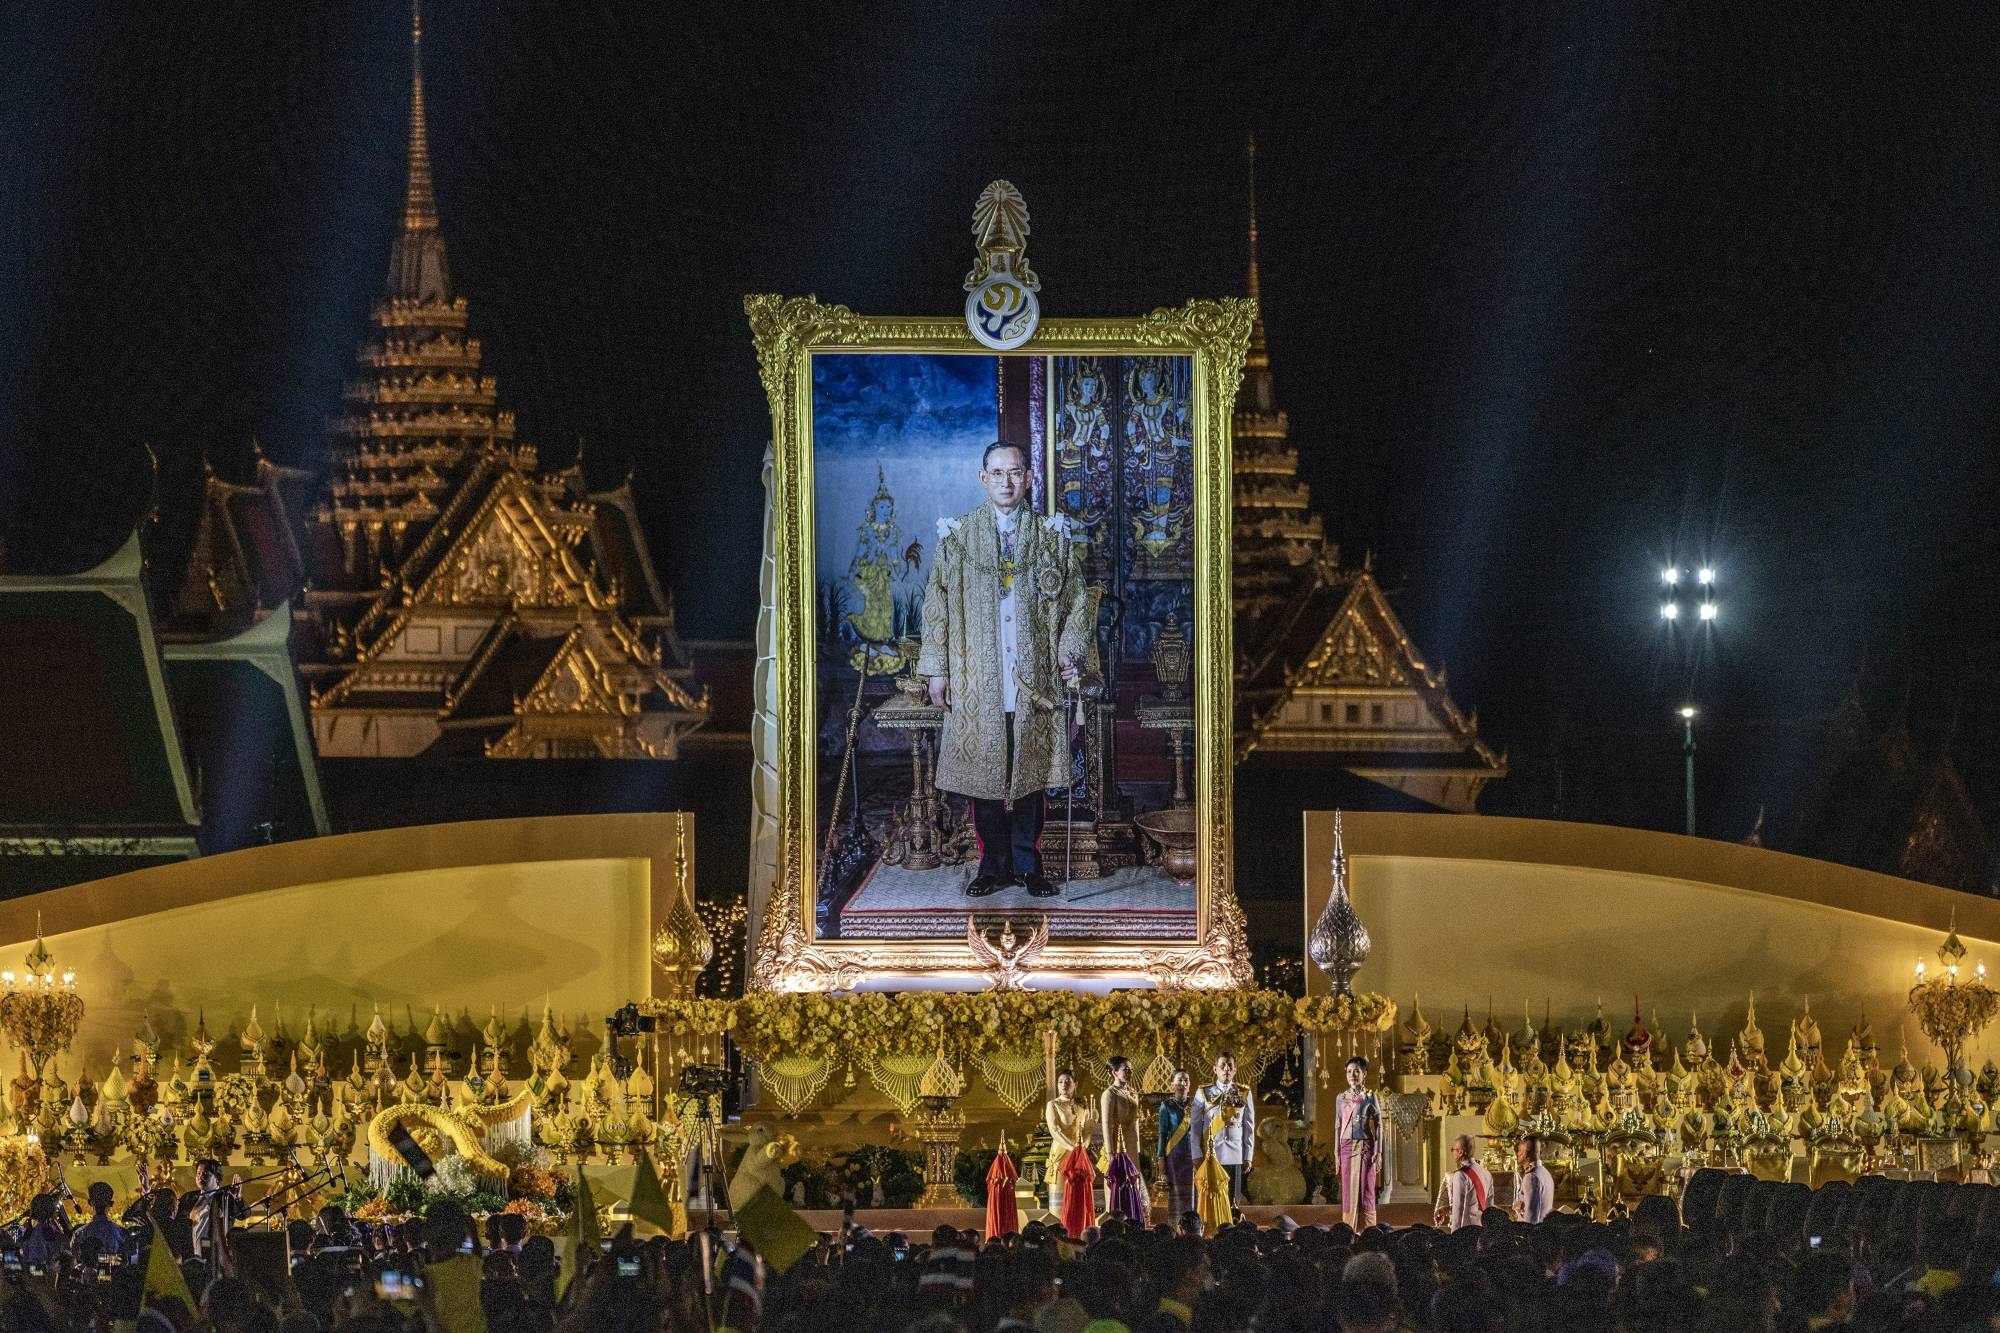 Thailand's king and queen preside over a ceremony in Bangkok on Dec. 5. to commemorate the late King Bhumibol Adulyadej's birthday. | ADAM DEAN / THE NEW YORK TIMES